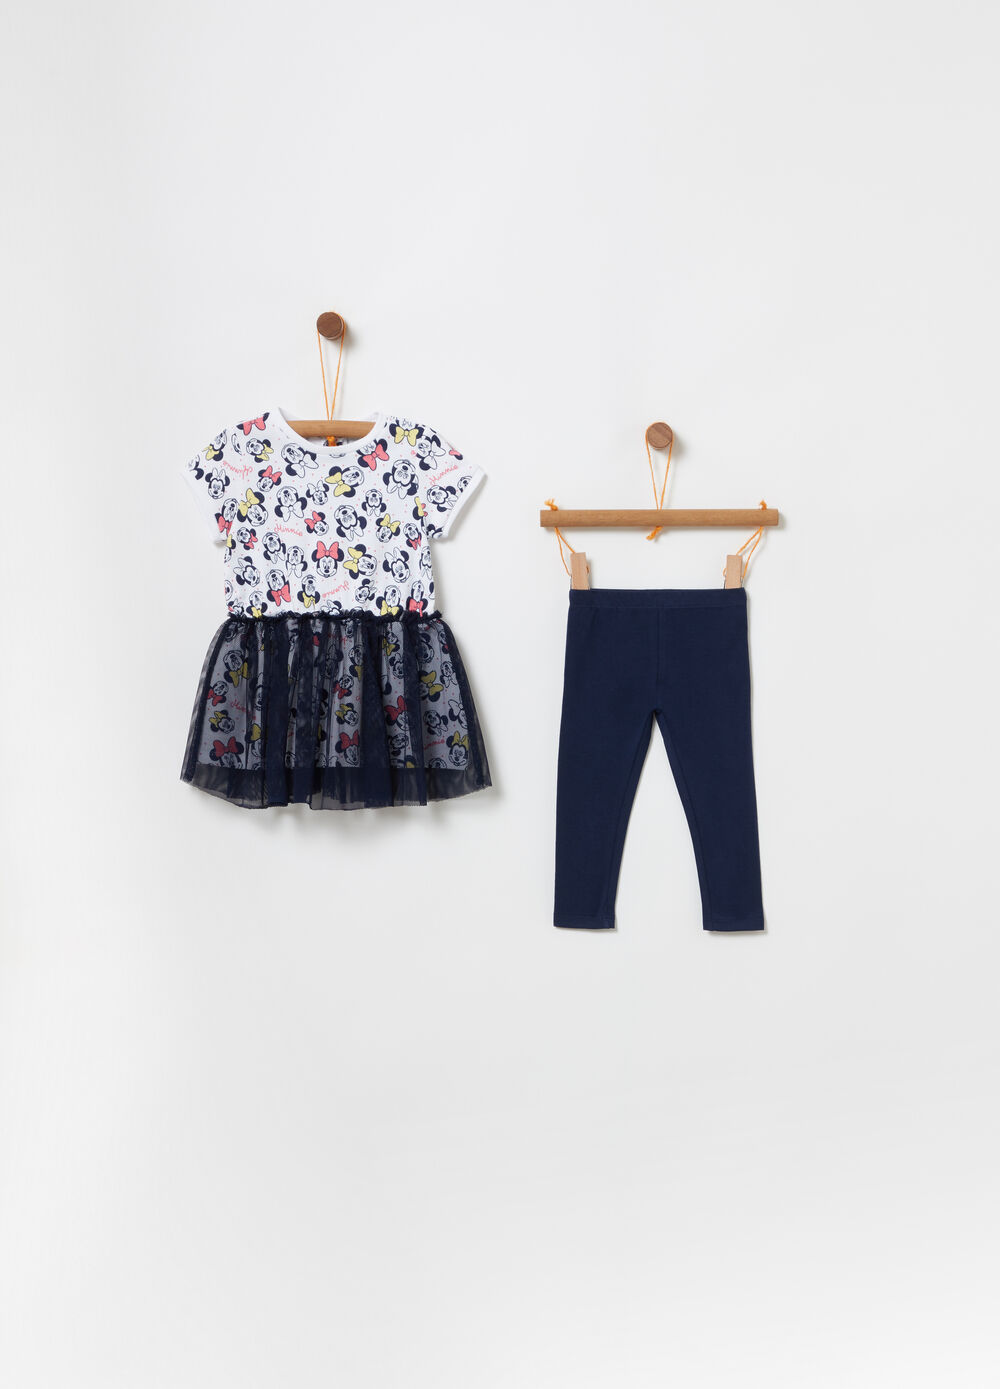 Dress and legging set with Minnie Mouse tulle